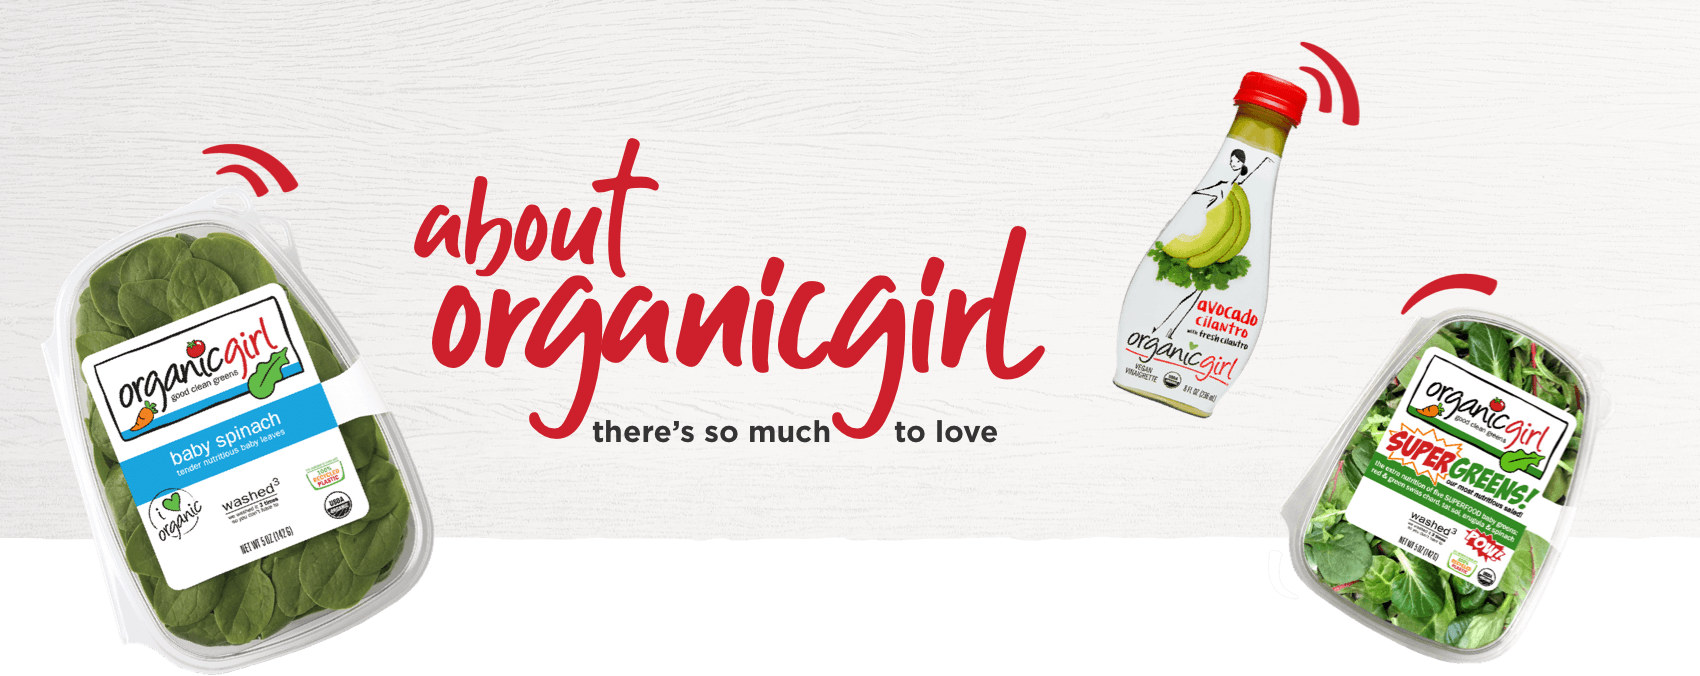 About Organicgirl